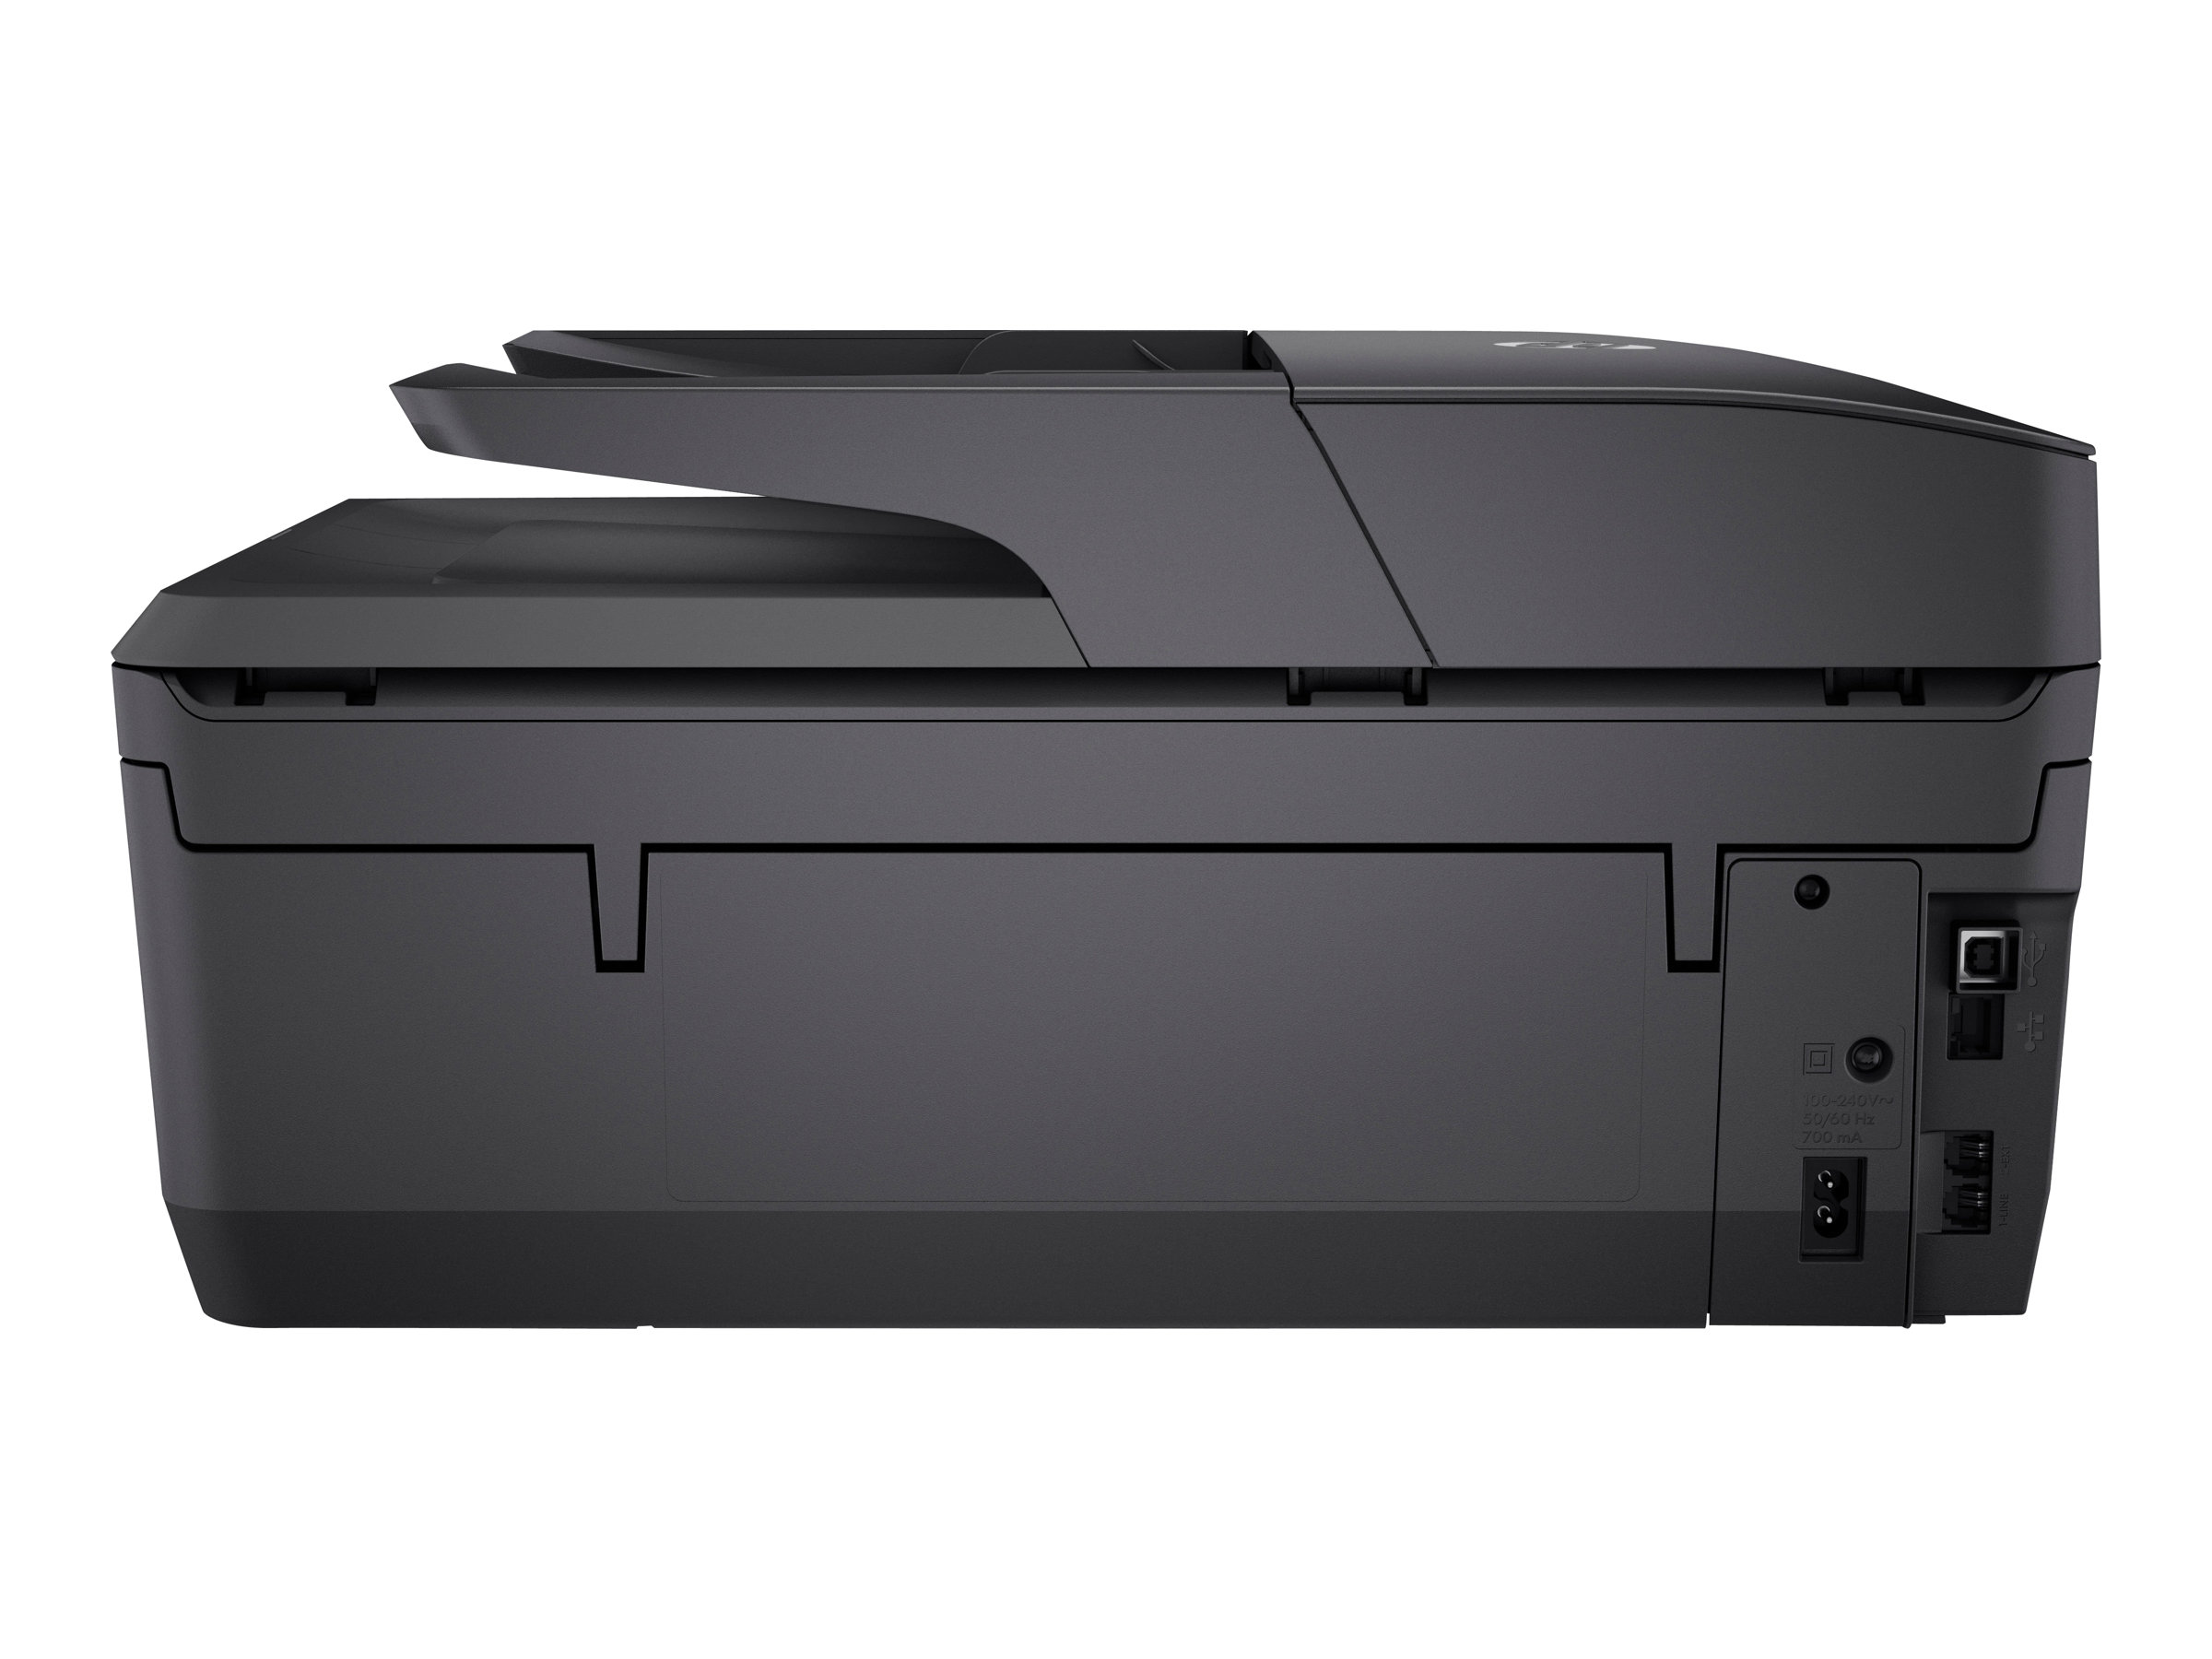 Imprimante HP Color Officejet Pro 6960 All-in-One vue arrière